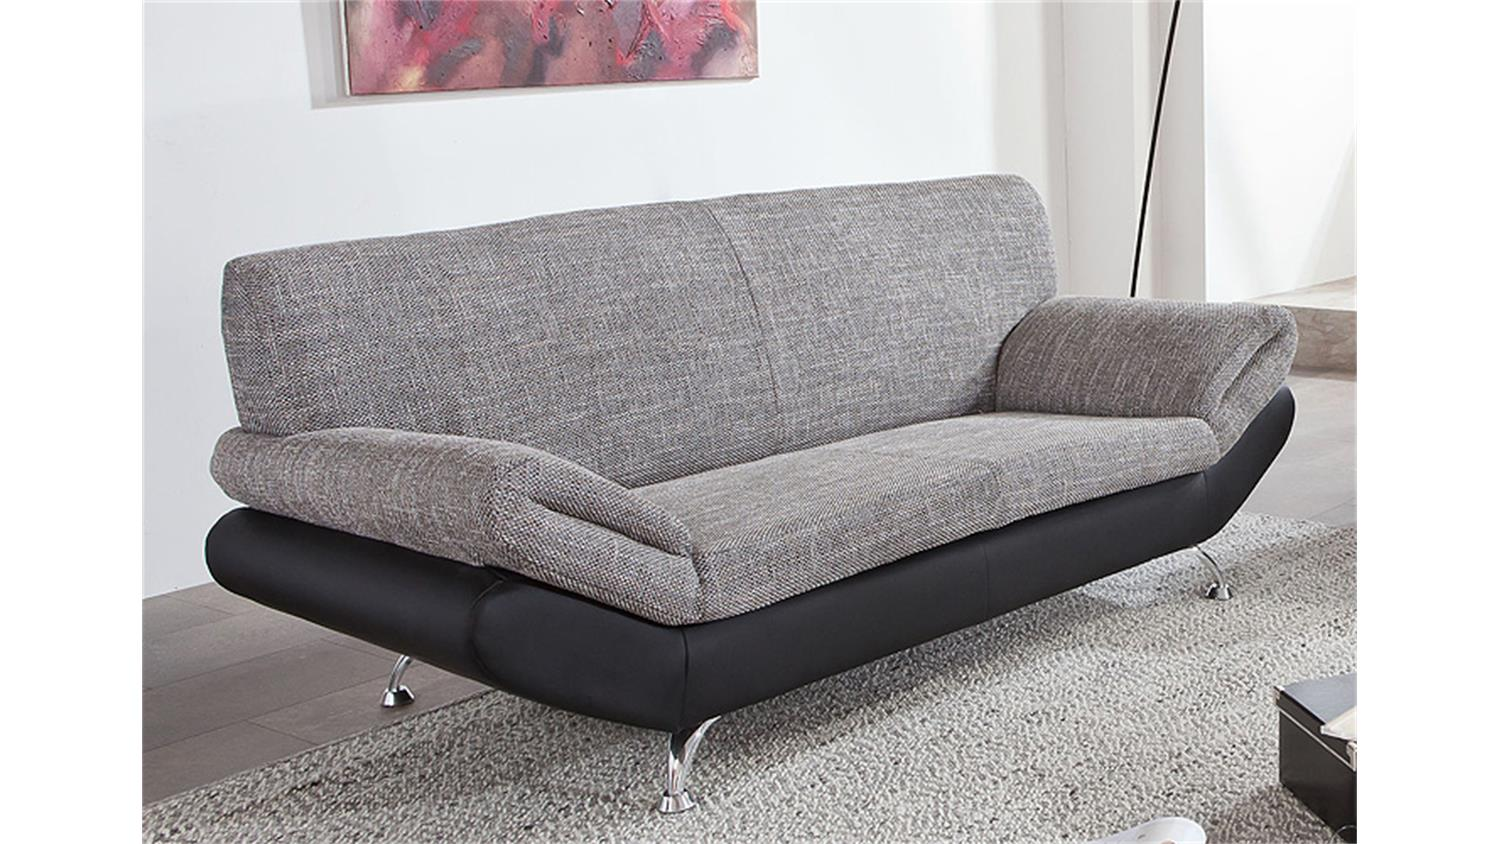 3er sofa parma schwarz grau magma 184 cm. Black Bedroom Furniture Sets. Home Design Ideas